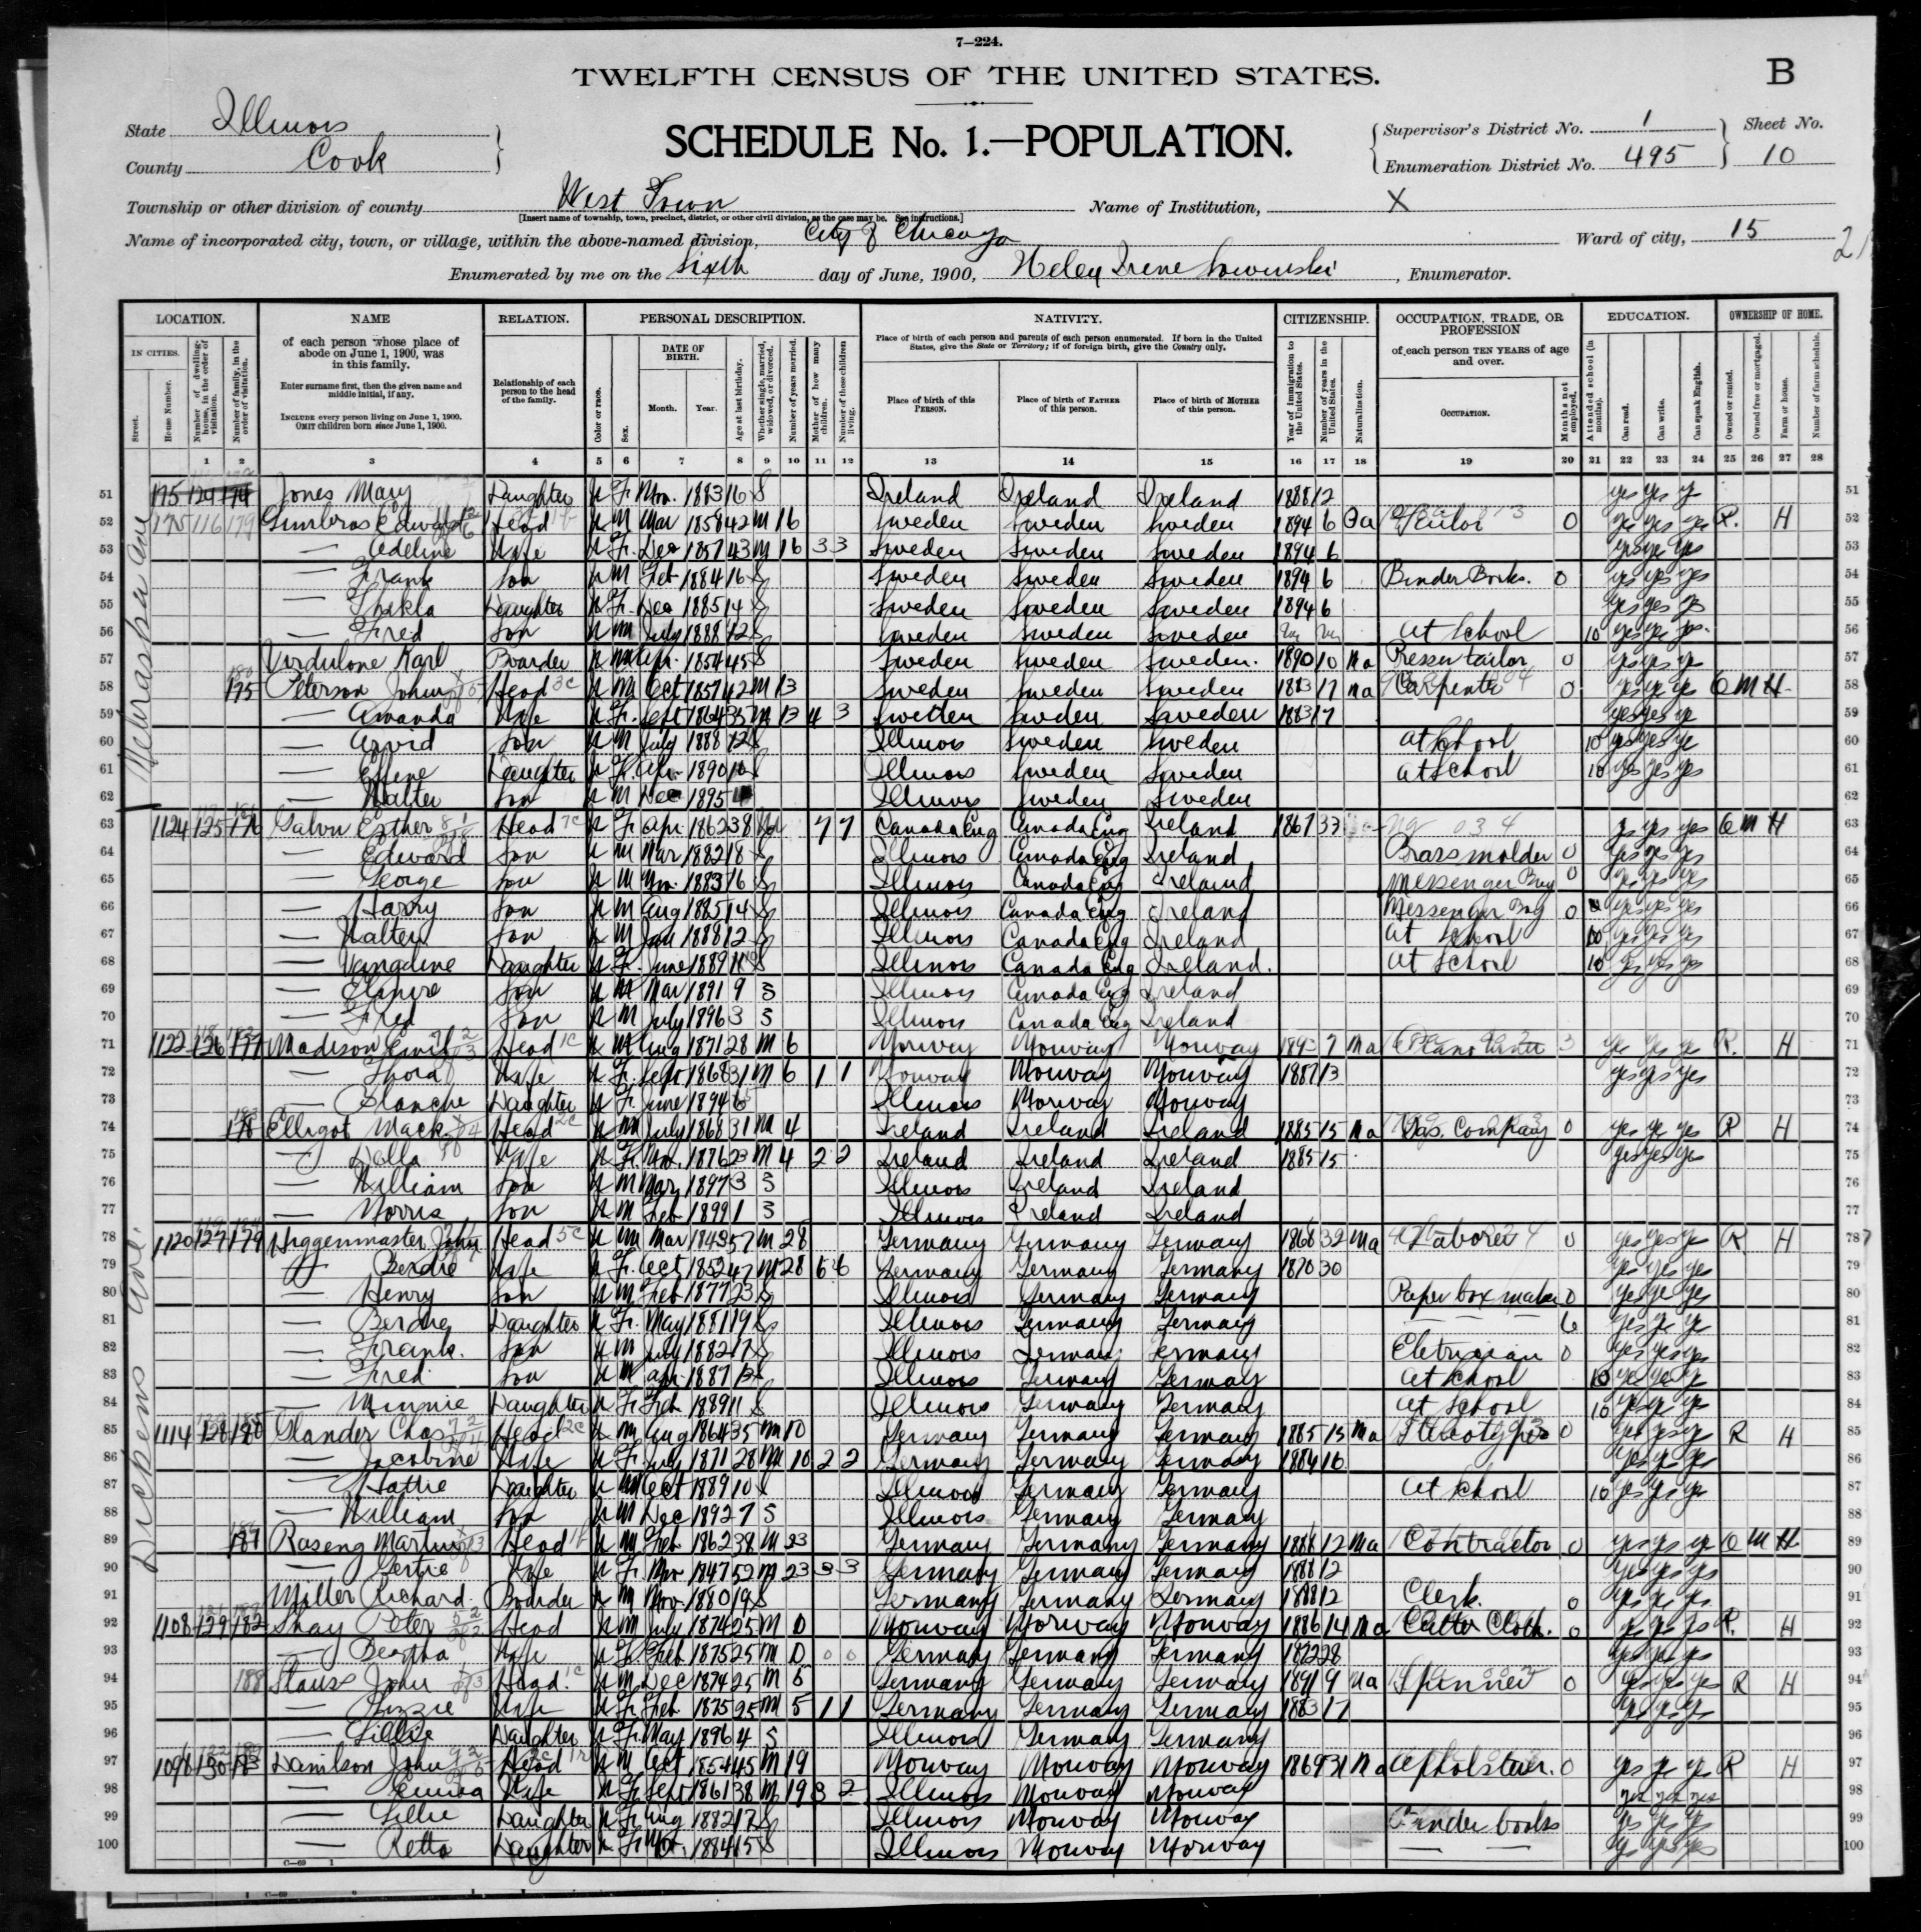 Illinois: COOK County, Enumeration District 495, Sheet No. 10B